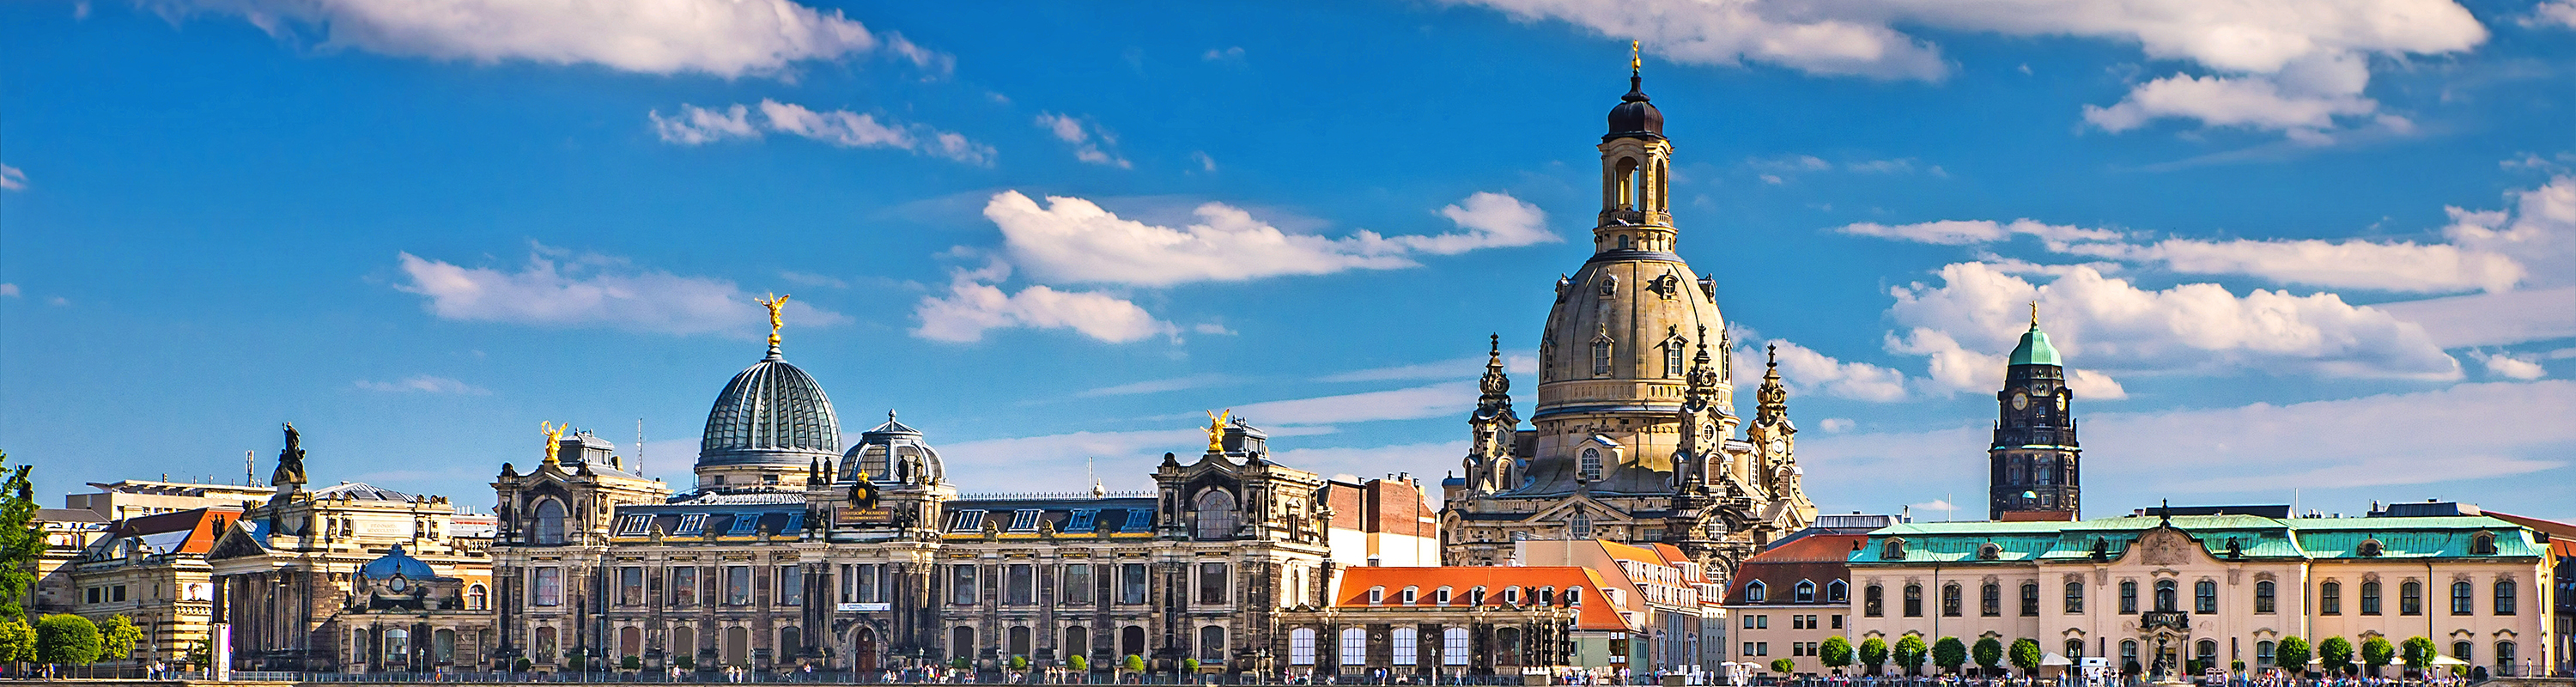 The ancient city of Dresden, Germany.Europe.